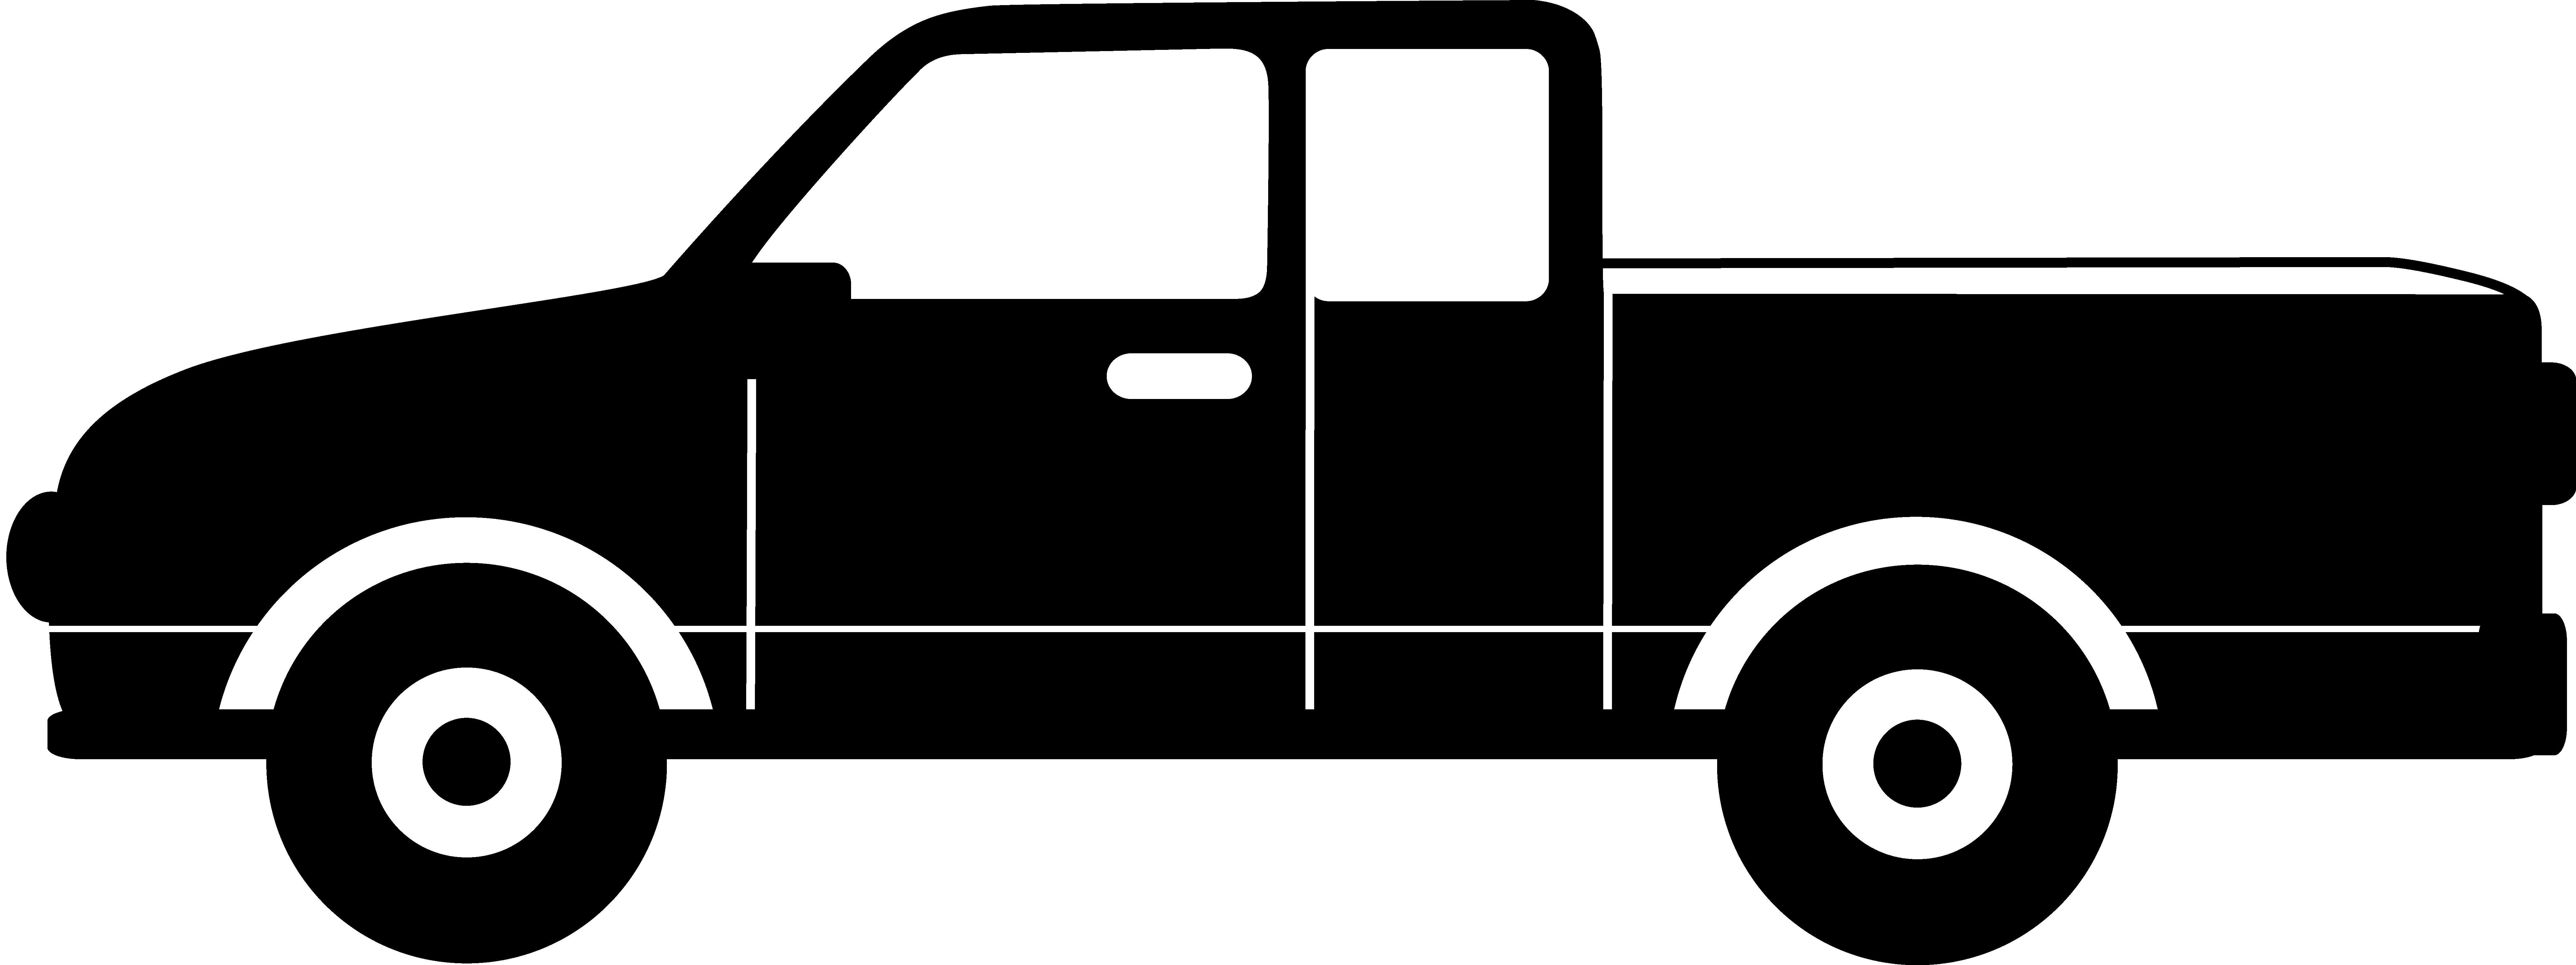 8572x3212 Vehicle Clipart Black And White